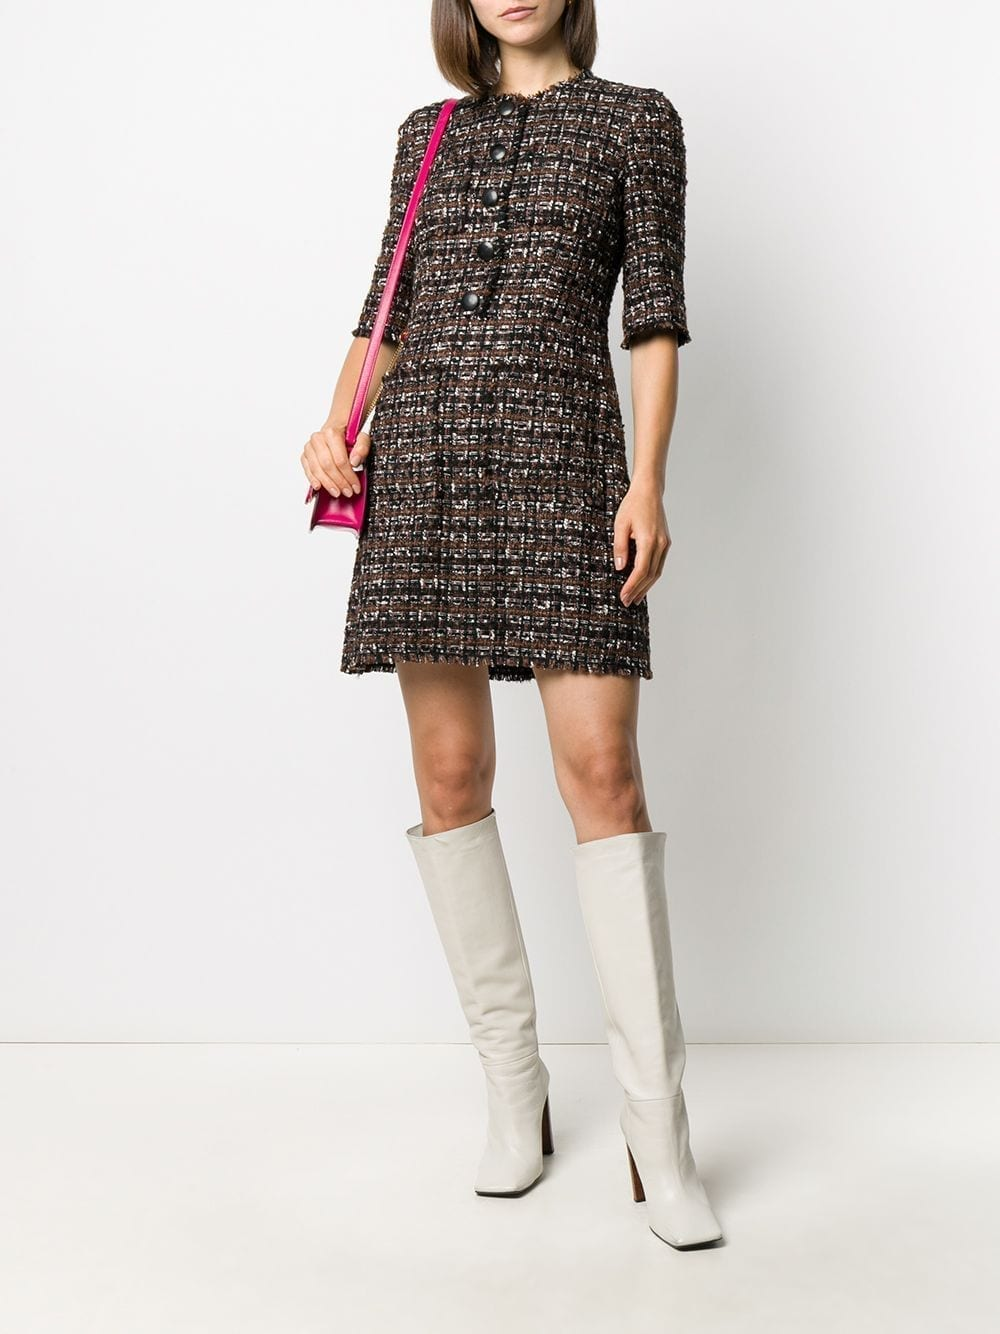 DOLCE & GABBANA Tweed Front-fastening Dress